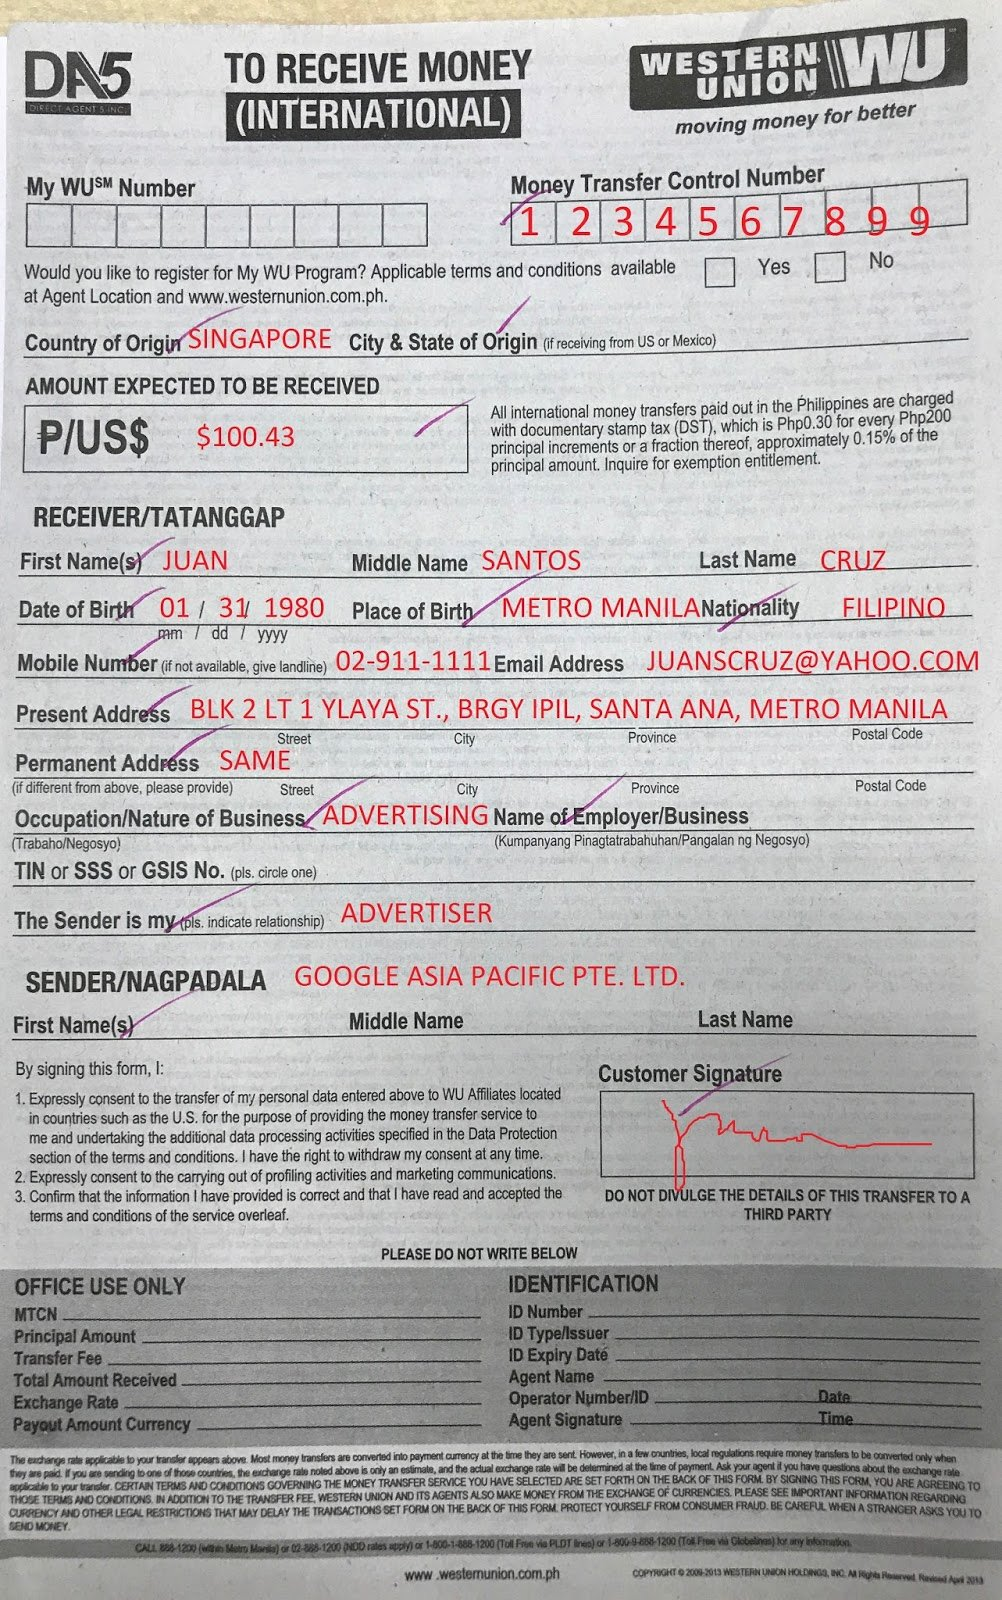 Western Union Receipt Sample Beautiful How to Claim Your Google Adsense Payment Via Western Union